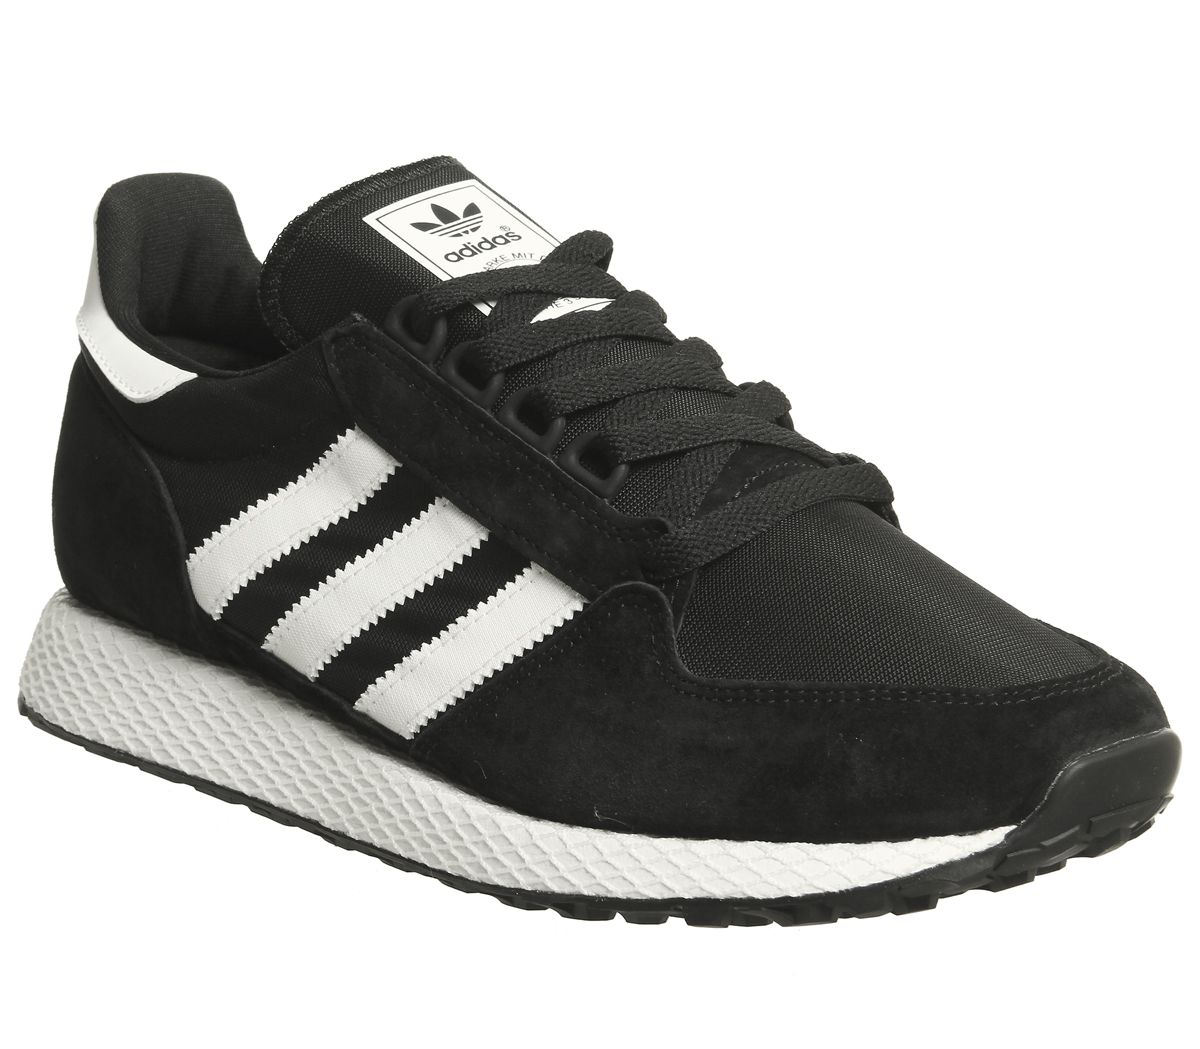 finest selection 2063e 81dc5 adidas Forest Grove Trainers Core Black White - Hers trainers